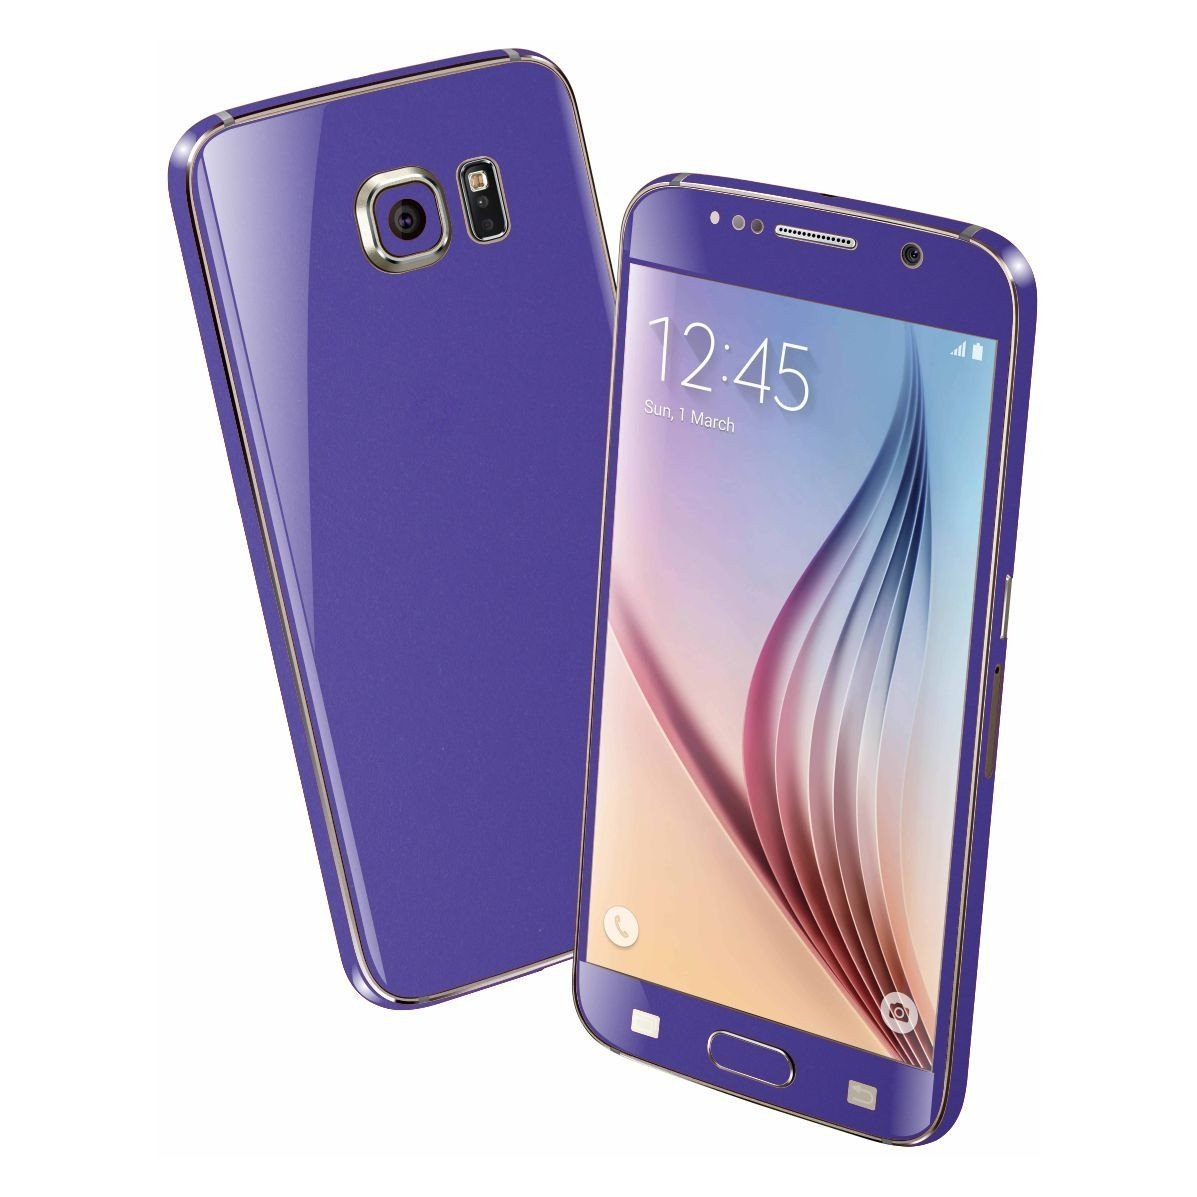 Samsung Galaxy S6 Colorful 3M Royal Purple MATT Skin Wrap Sticker Cover Protector Decal by EasySkinz